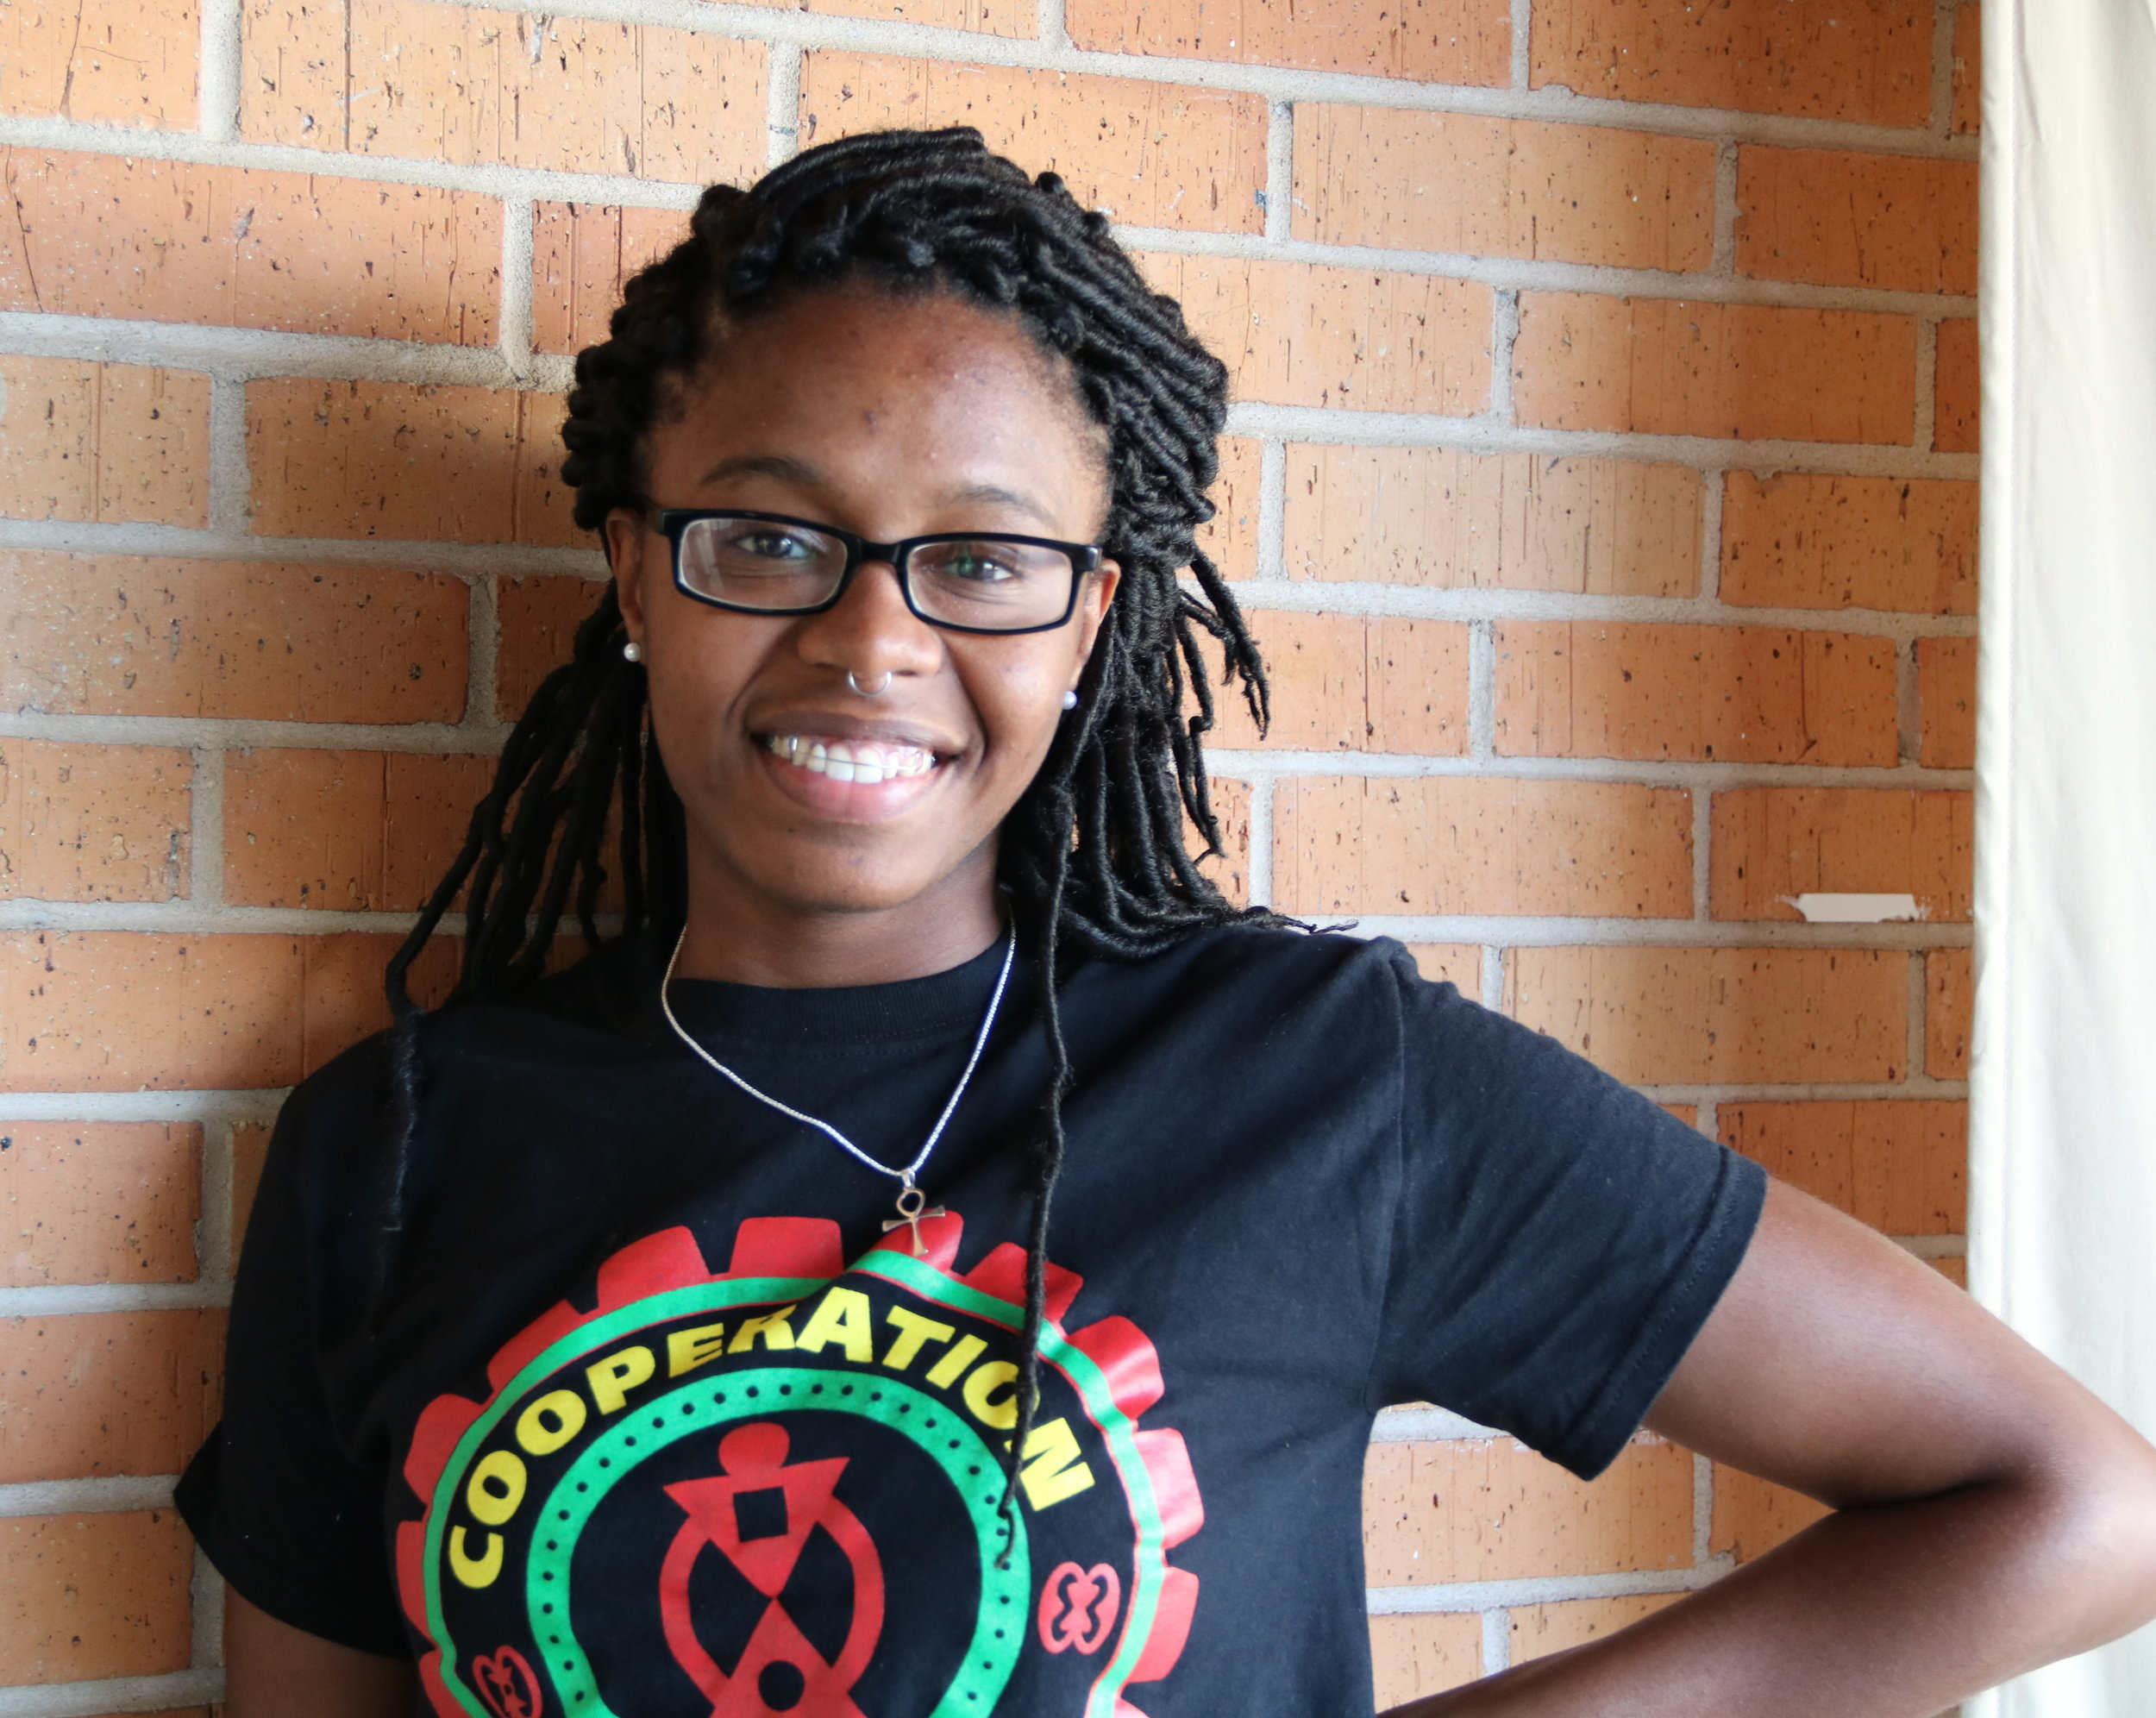 AMALYA LIVINGSTON IS ONE OF OUR FAB LAB INTERNS IN COMMUNITY PRODUCTION WITH INCITE FOCUS IN DETROIT MI.